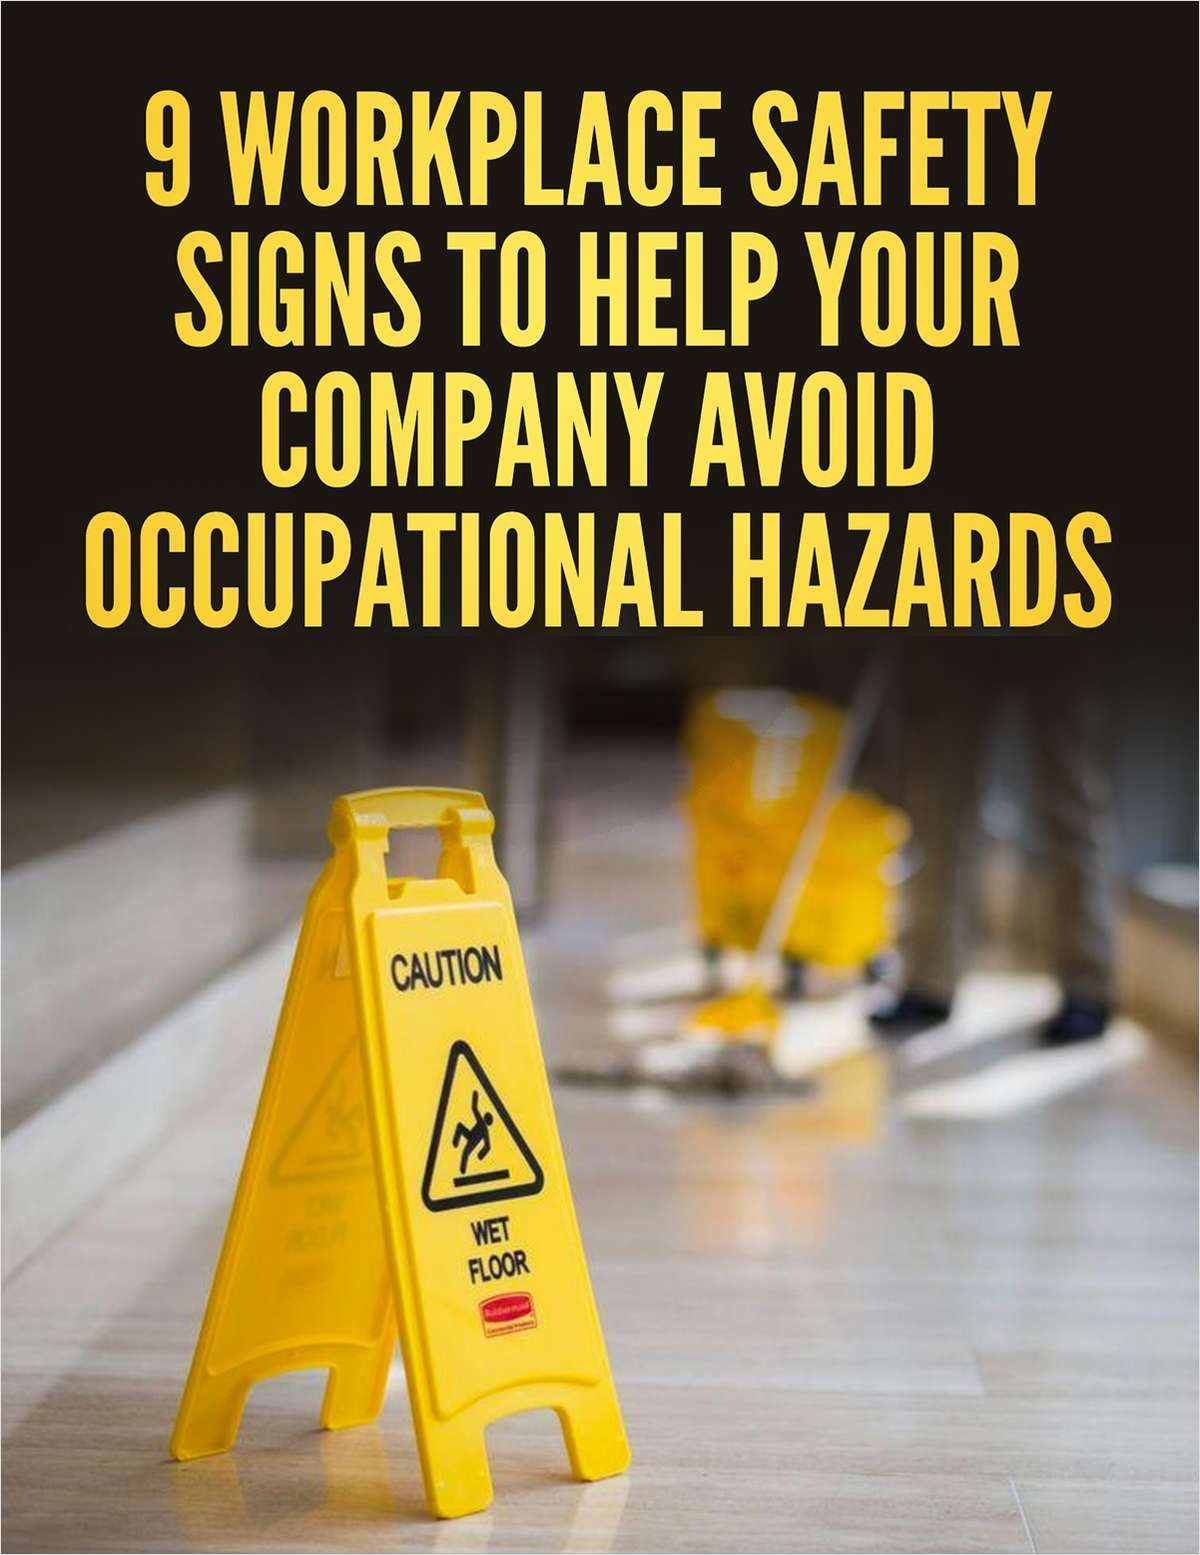 9 Workplace Safety Signs to Help Your Company Avoid Occupational Hazards